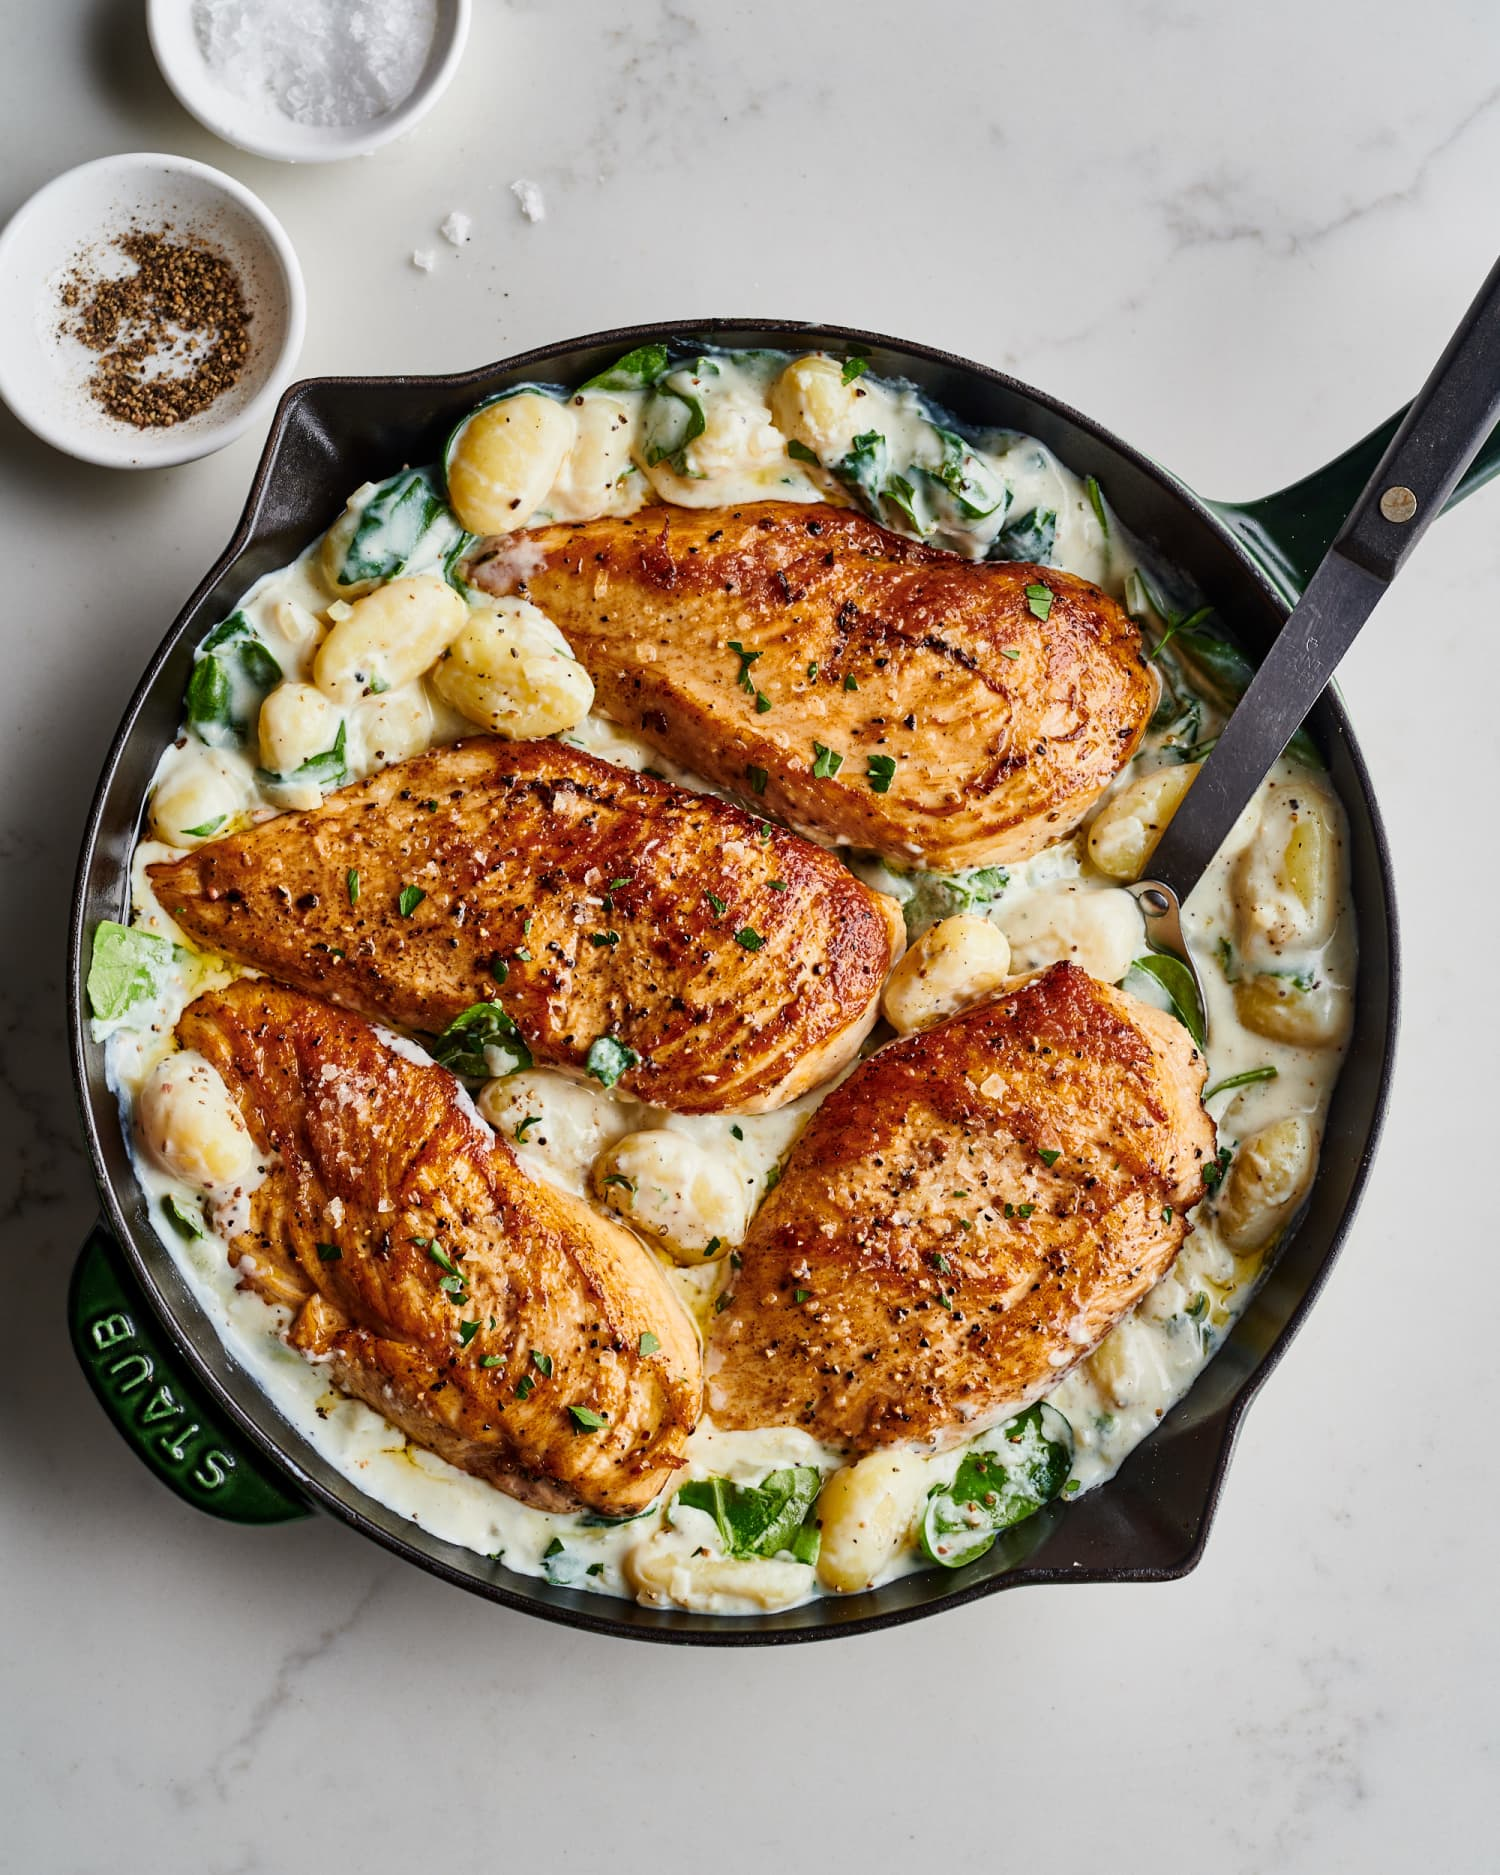 You Don't Actually Need Cream to Make This Creamy Chicken and Gnocchi Skillet